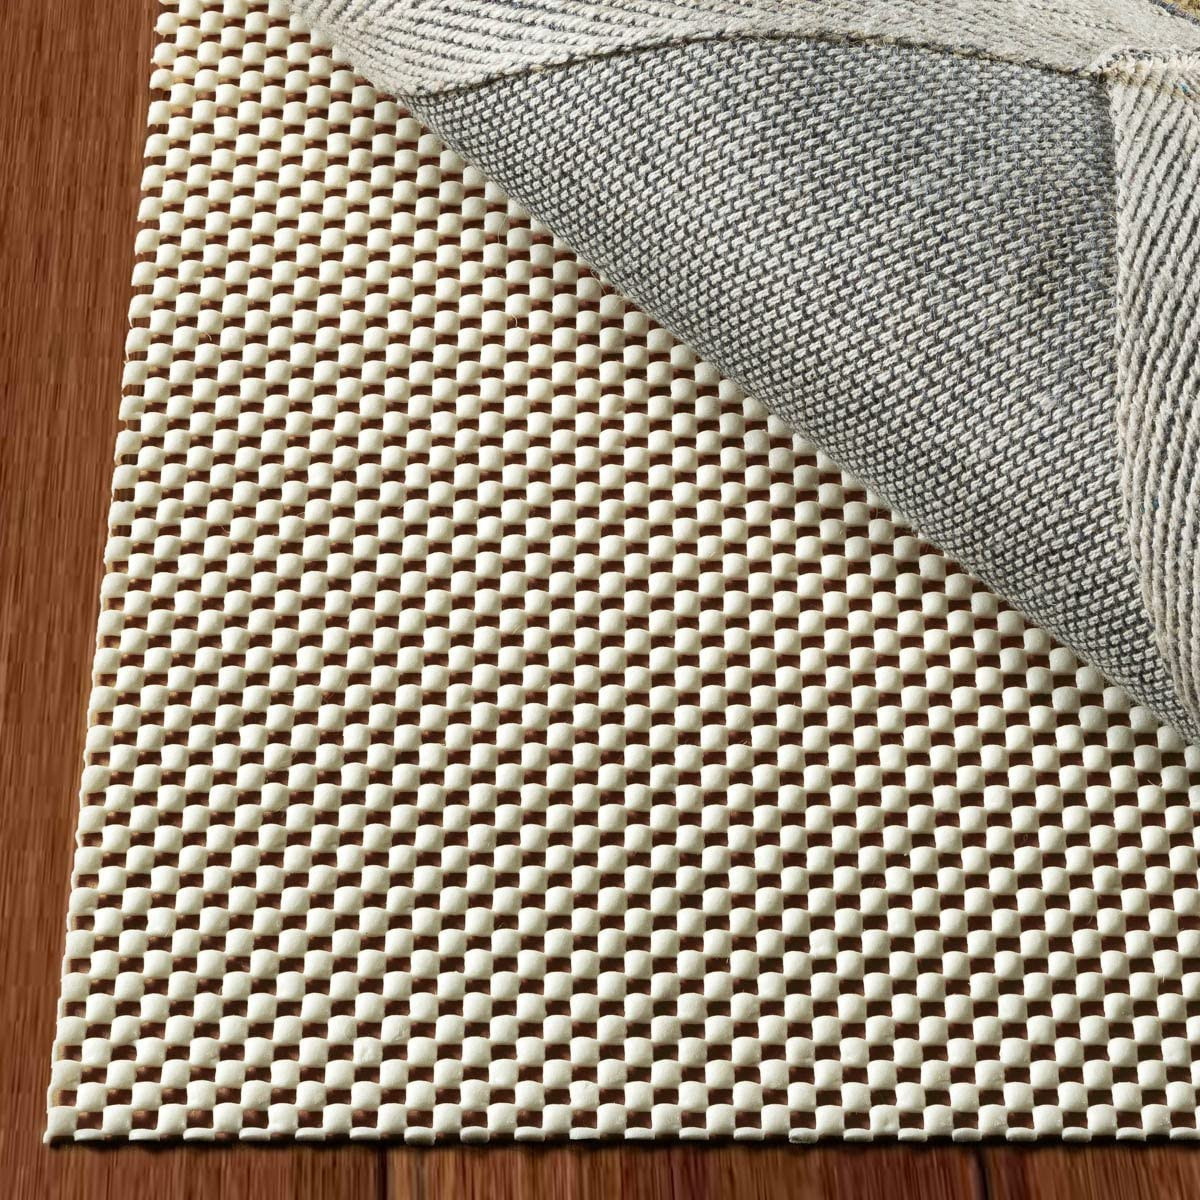 Doublecheck Products Non Slip Area Rug Pad Size 9 X 12